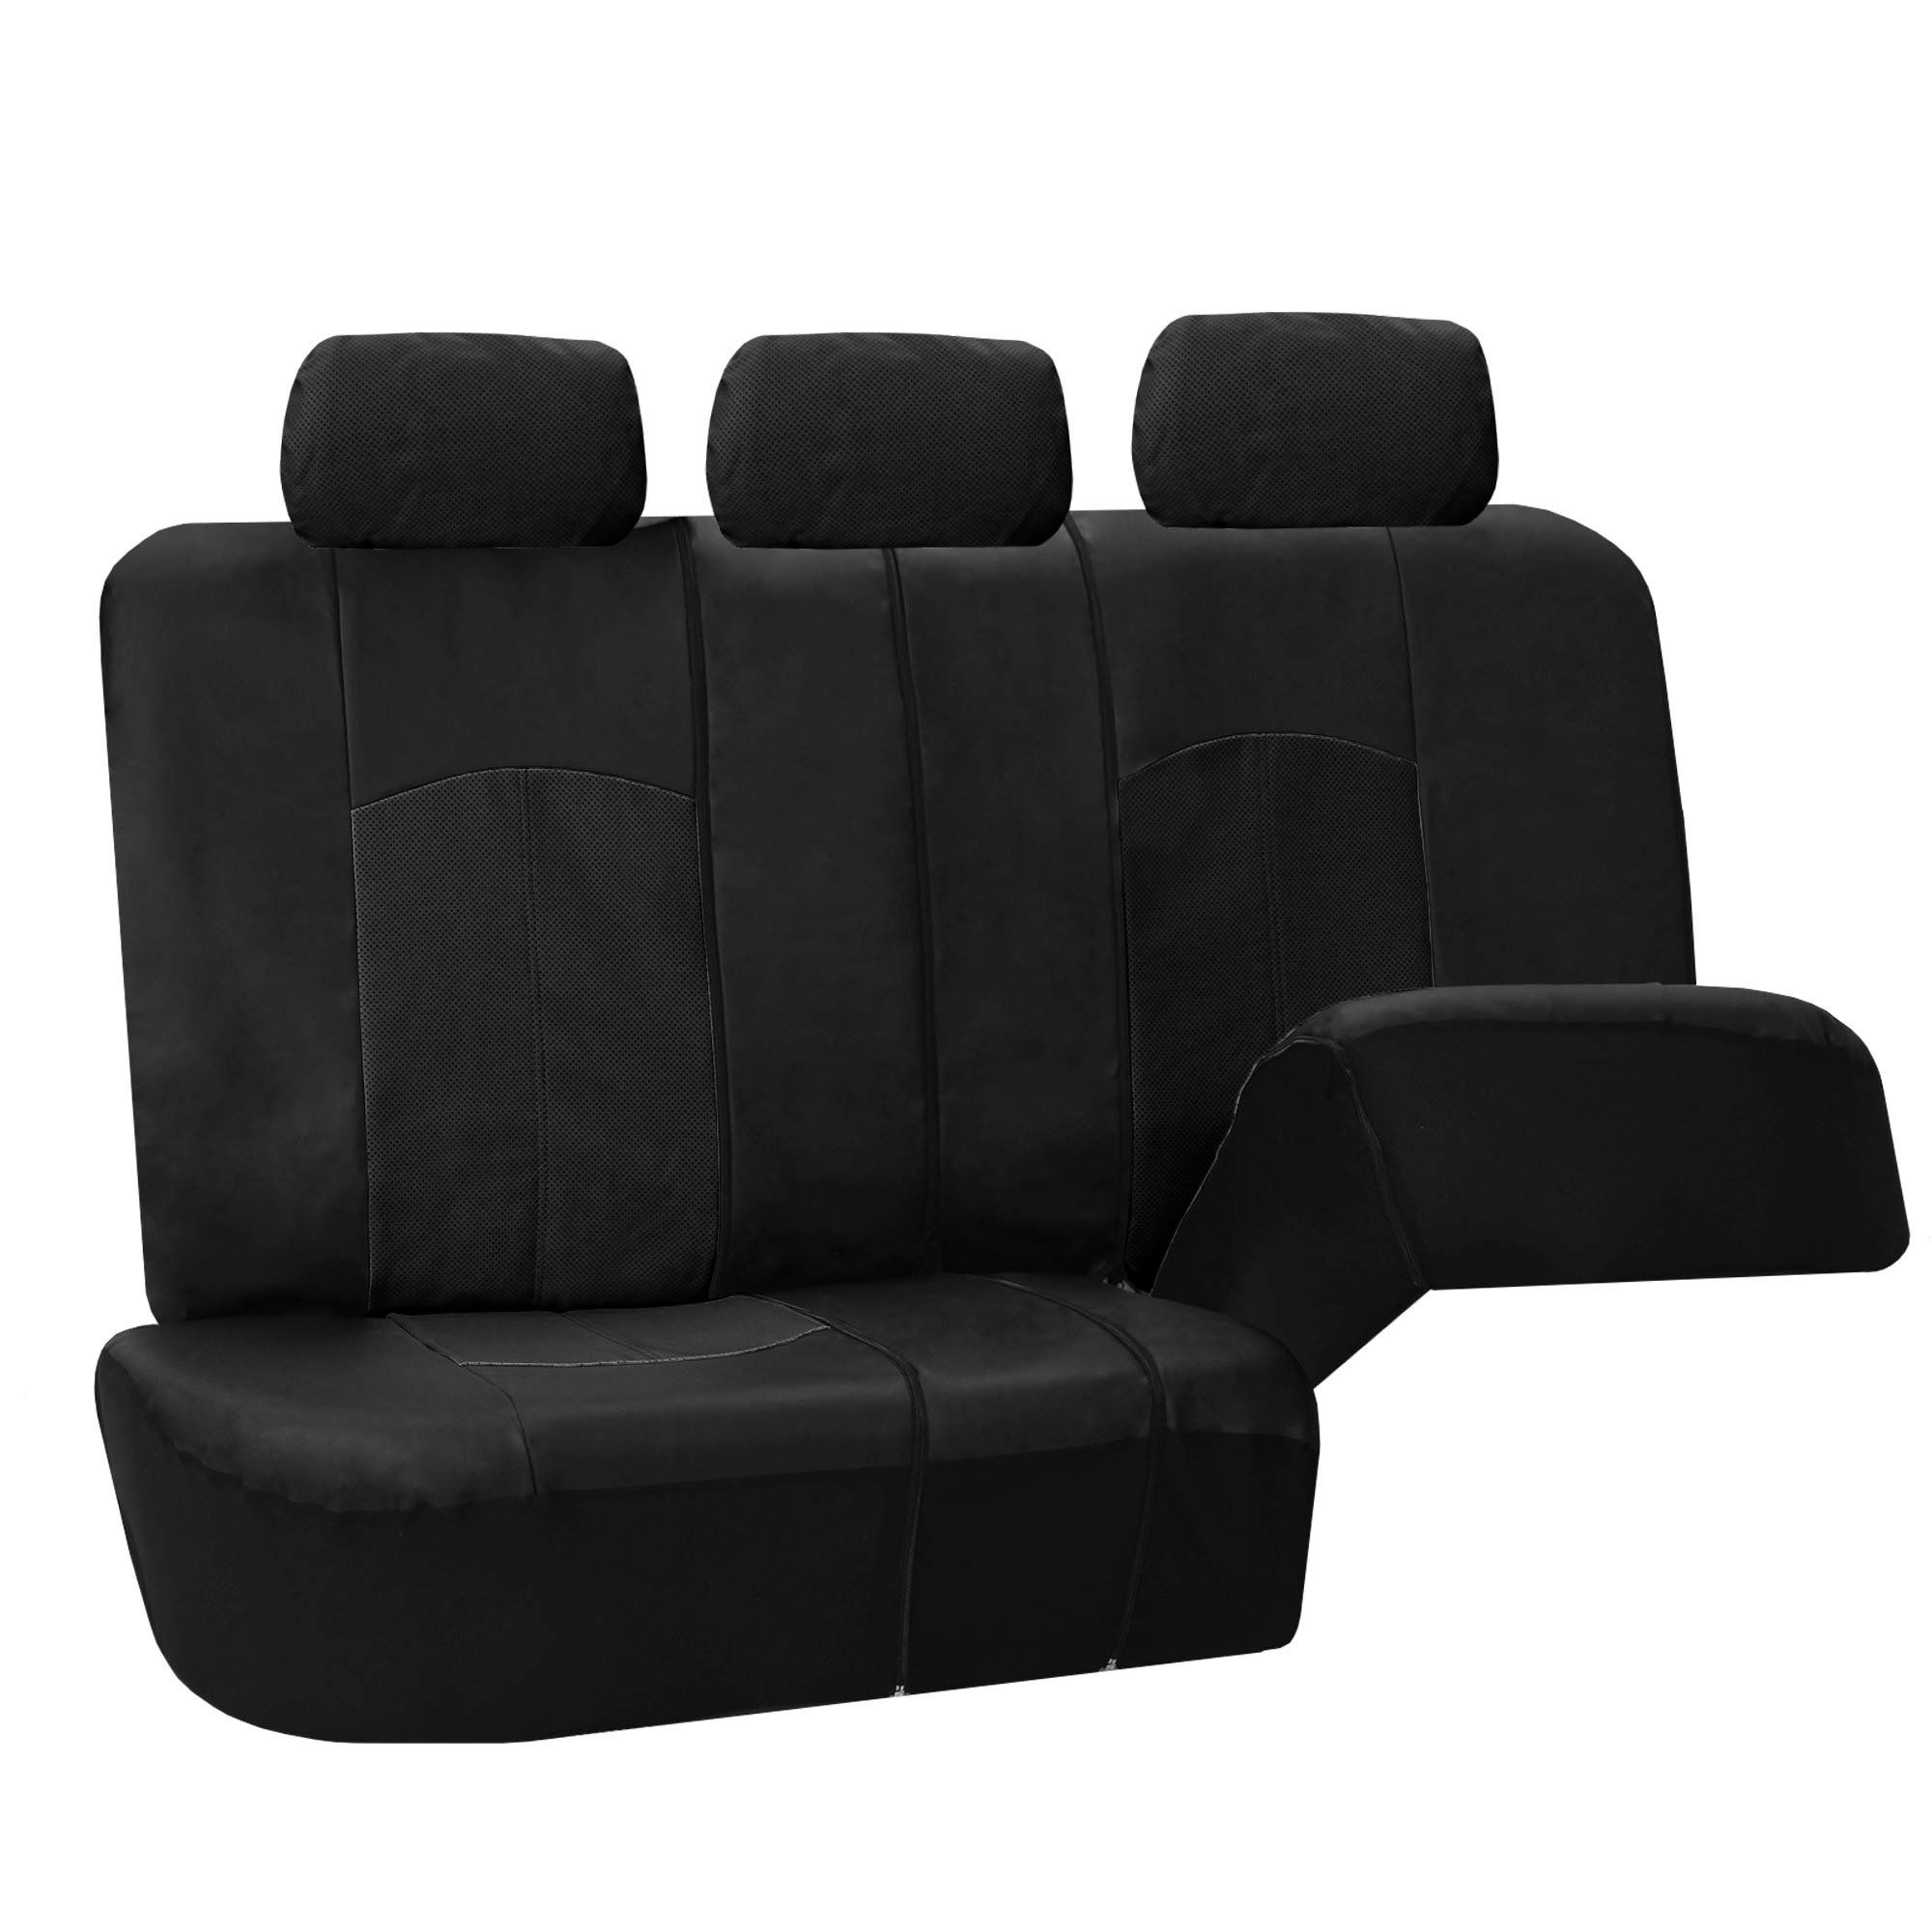 Fh group fhpu008115 perforated leatherette full set car